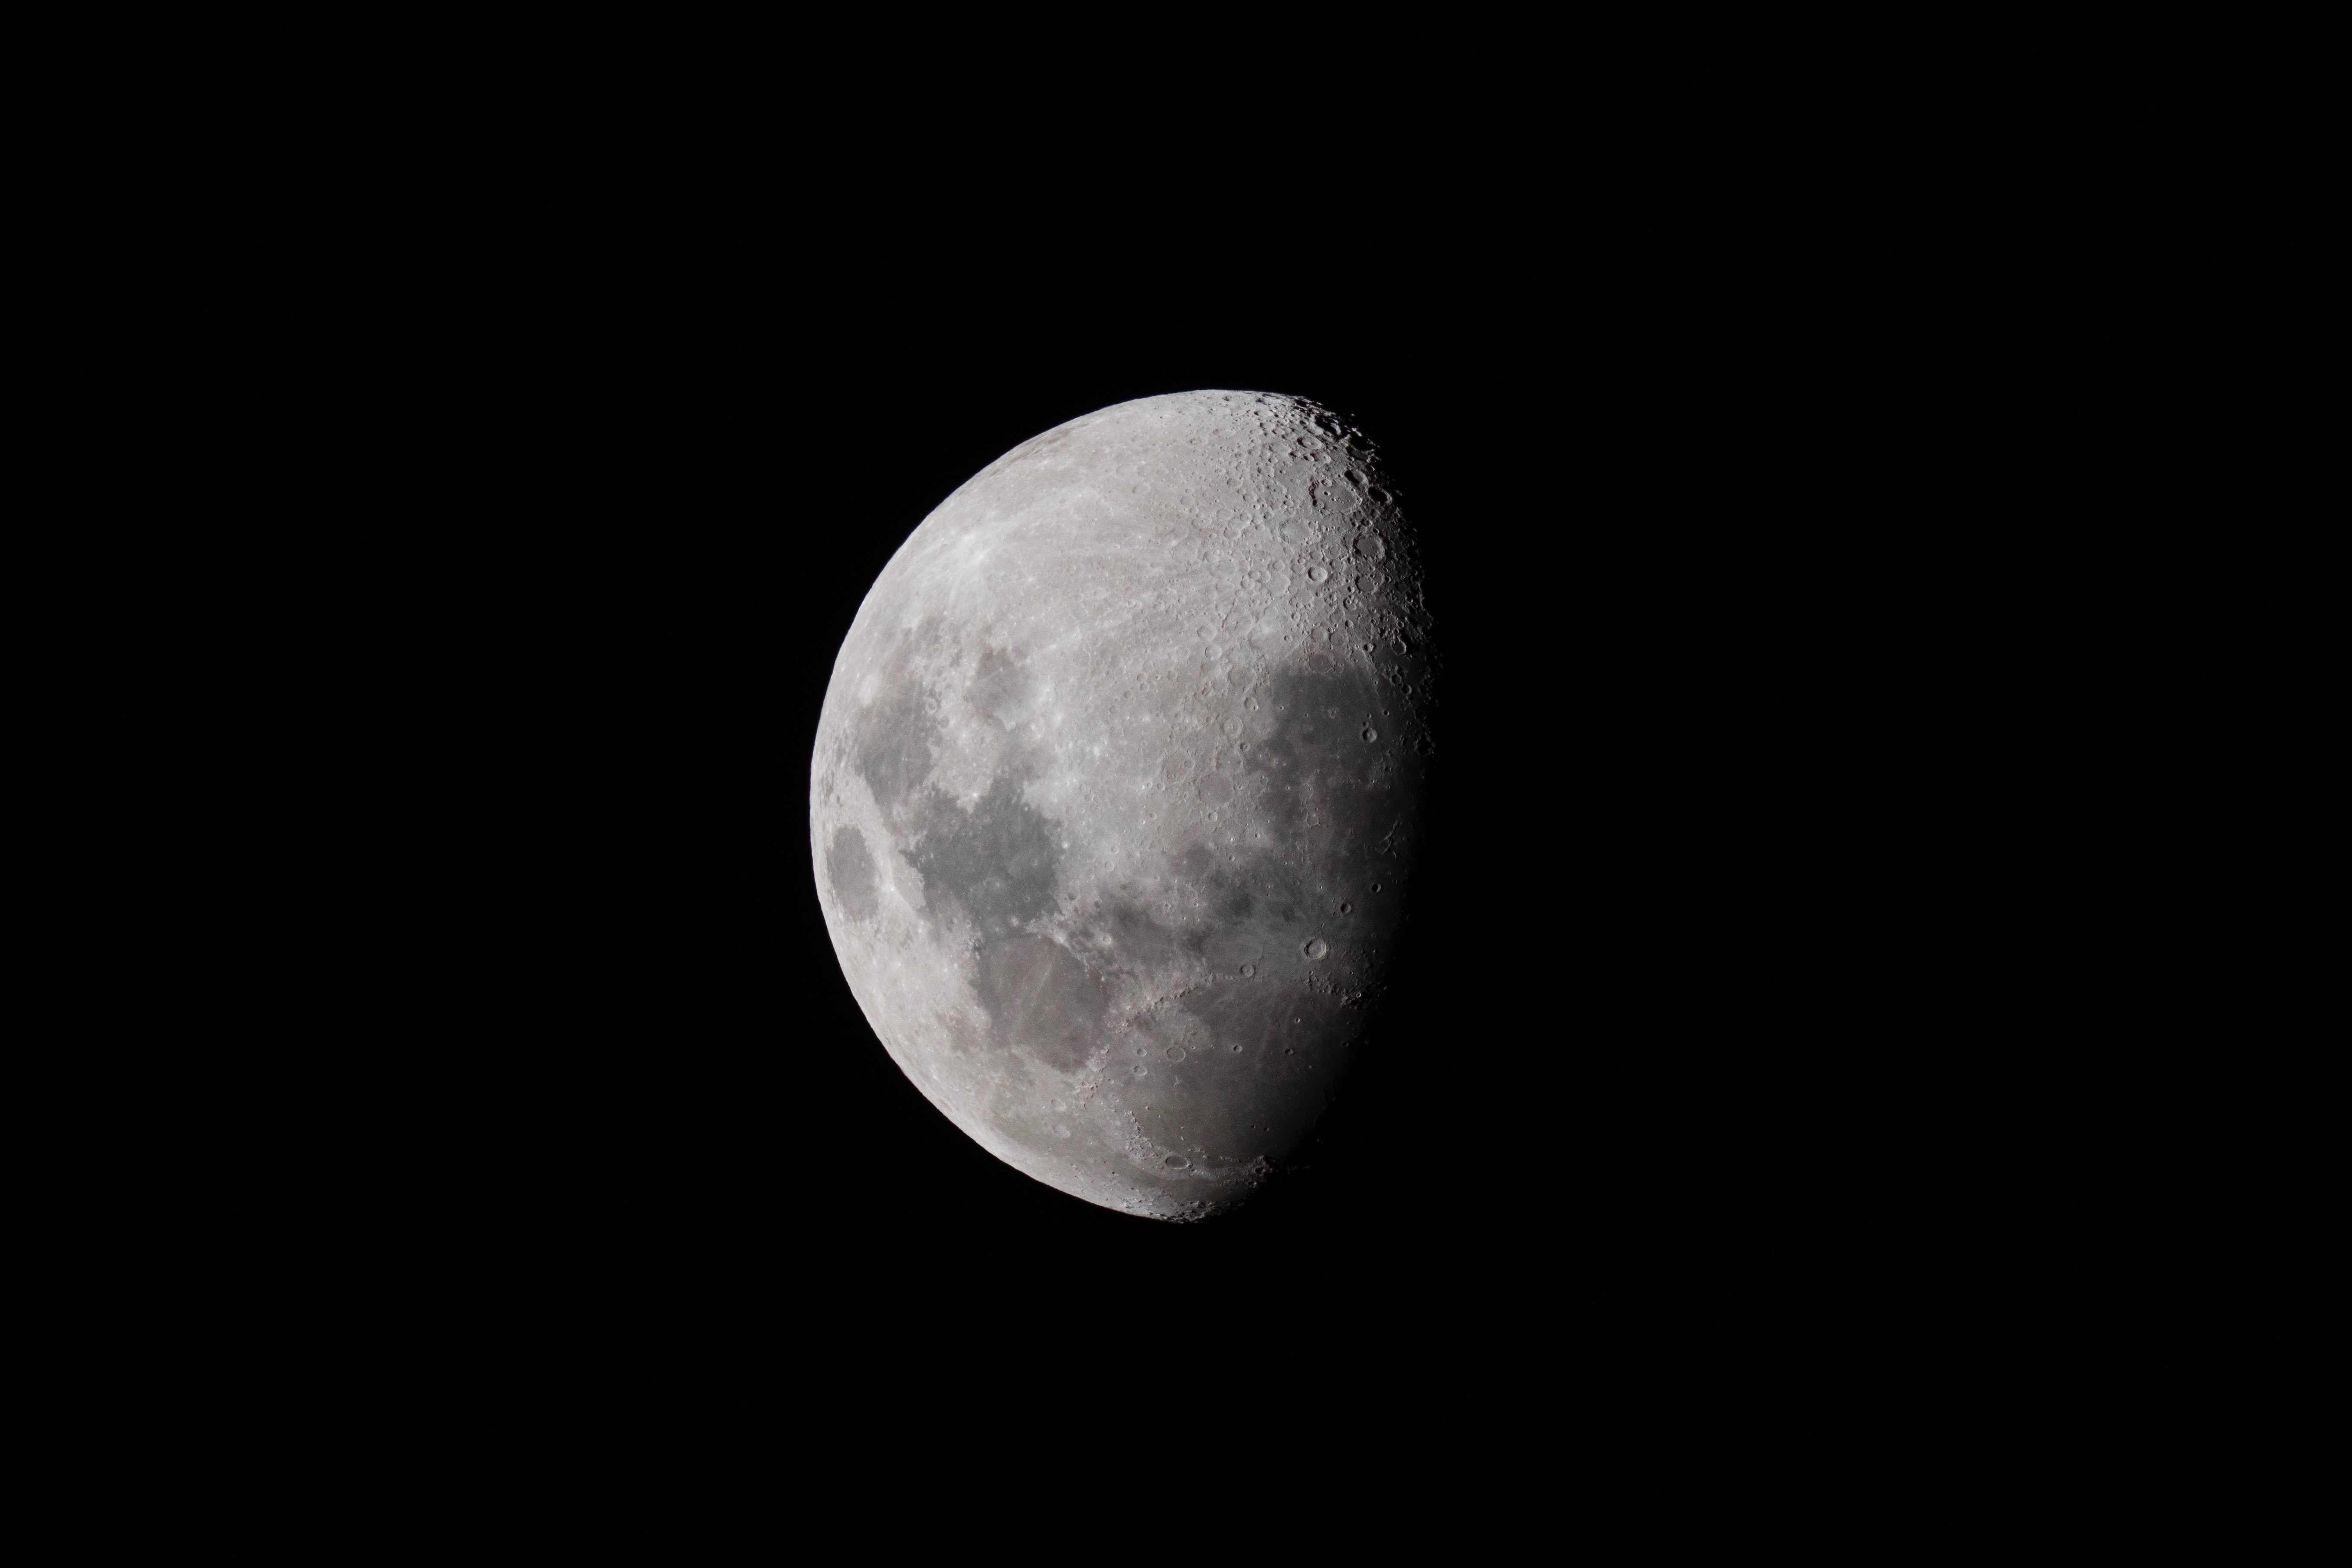 Lunar craters visible on the moon on the night sky at Otago Peninsula